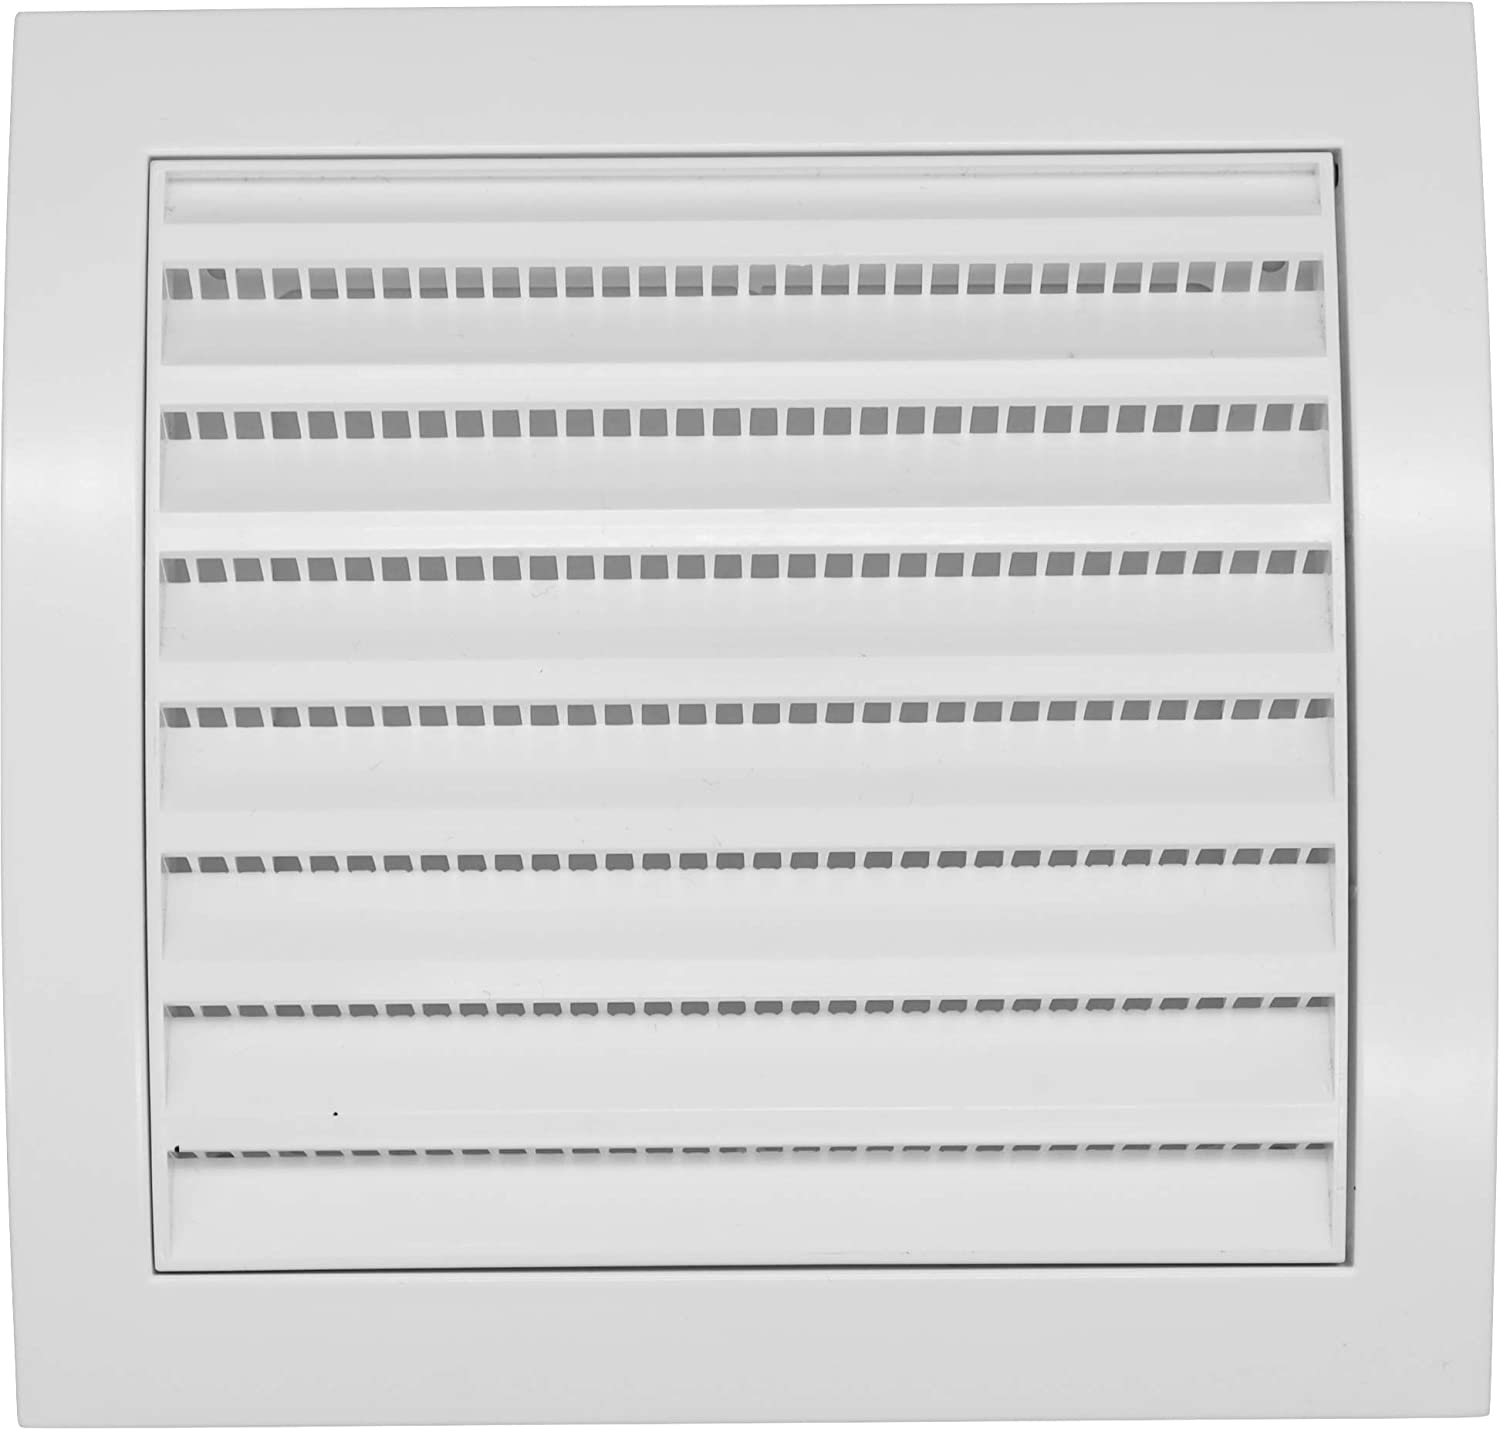 Vent Systems 4'' Inch Air Vent Cover Dryer Vents and Bathroom Exhaust Vents Pipe, White Louvered Outdoor Dryer Vent Cover Opening Flap Vent Keeps Out Insects, Birds and Rodents